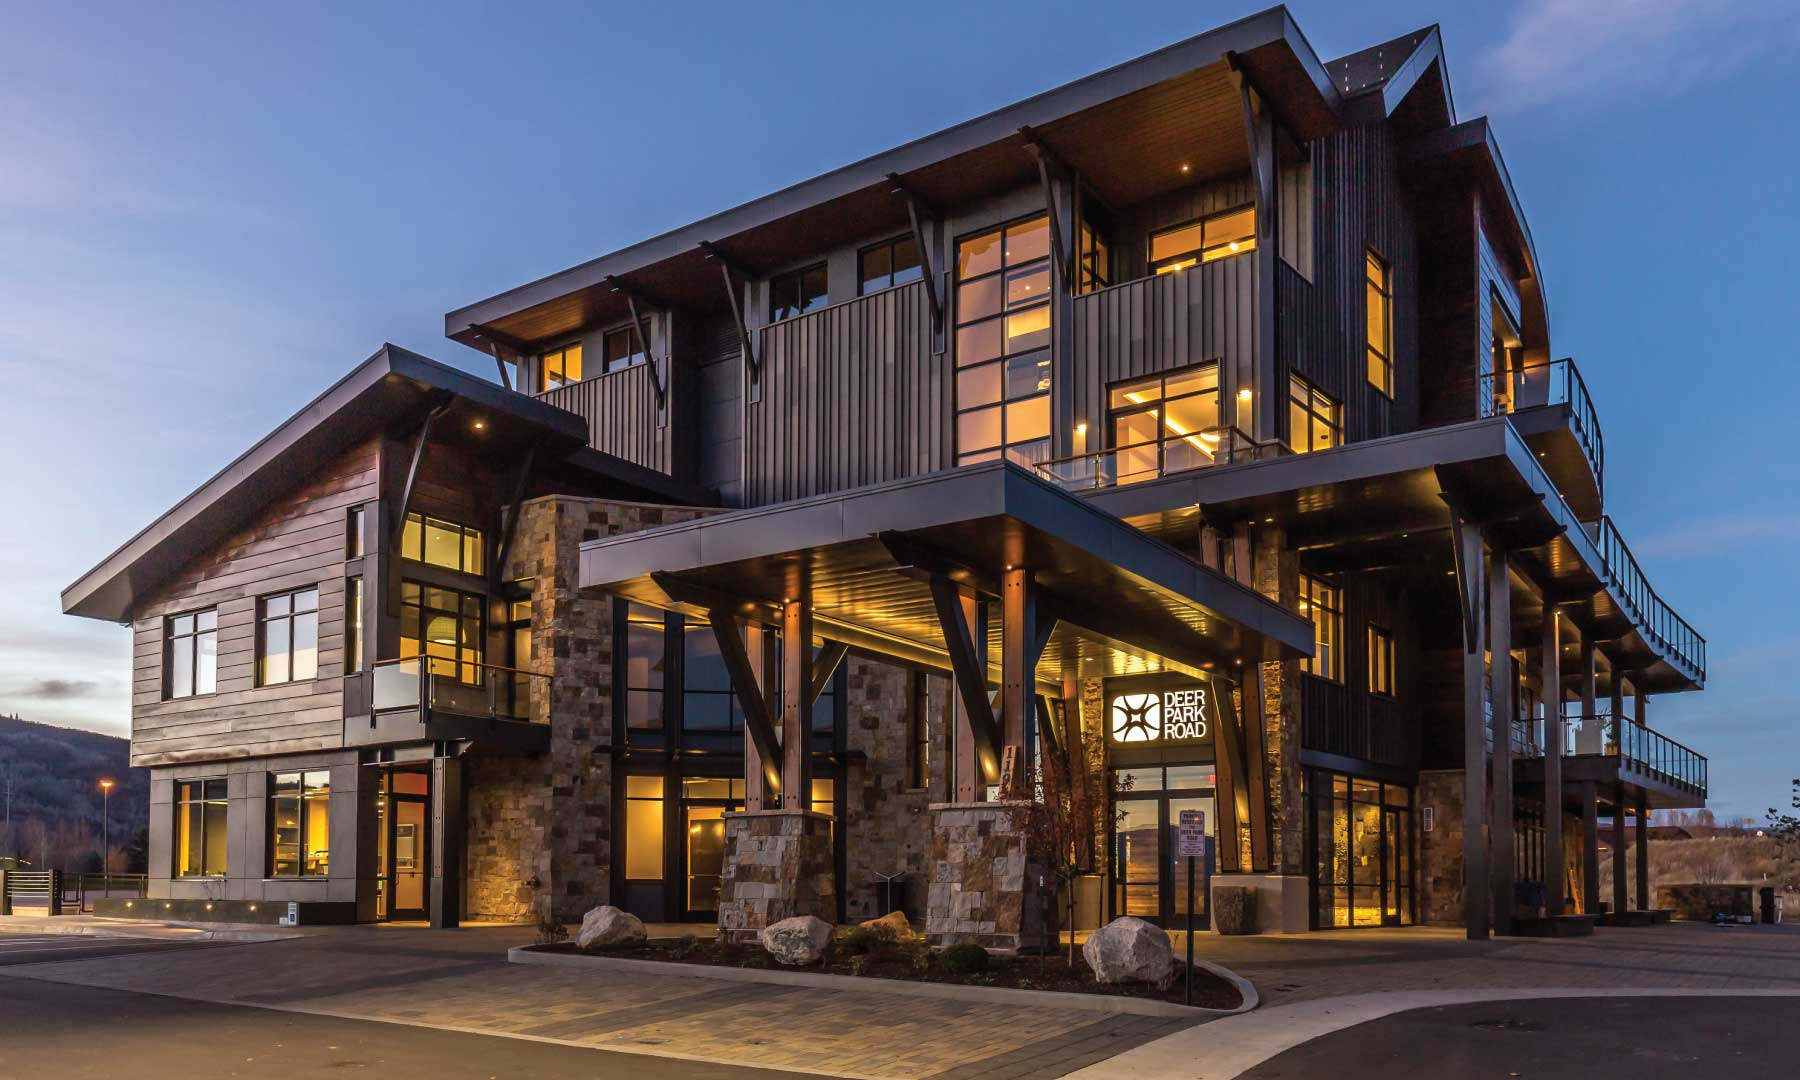 Building in Steamboat Springs all lit up at night.